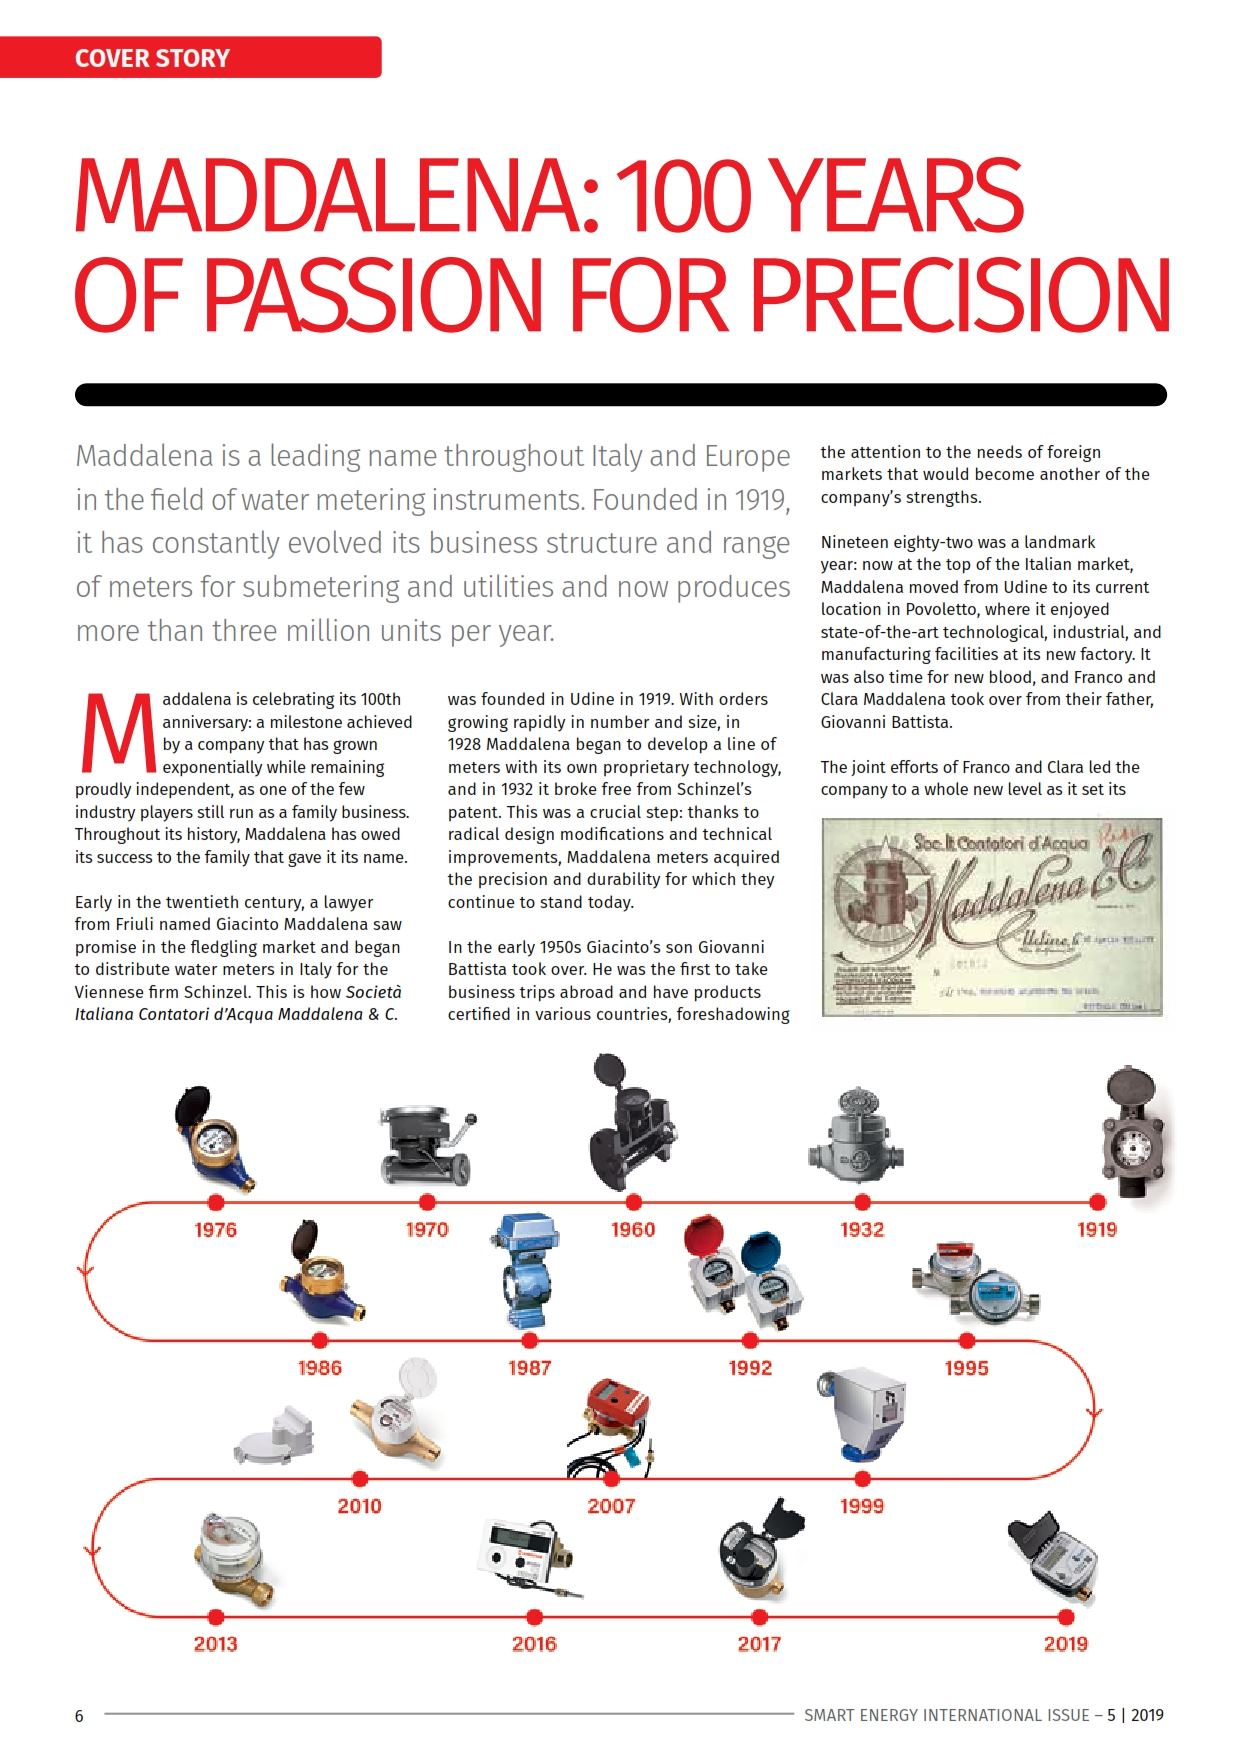 Editorial 100 years of passion for precision